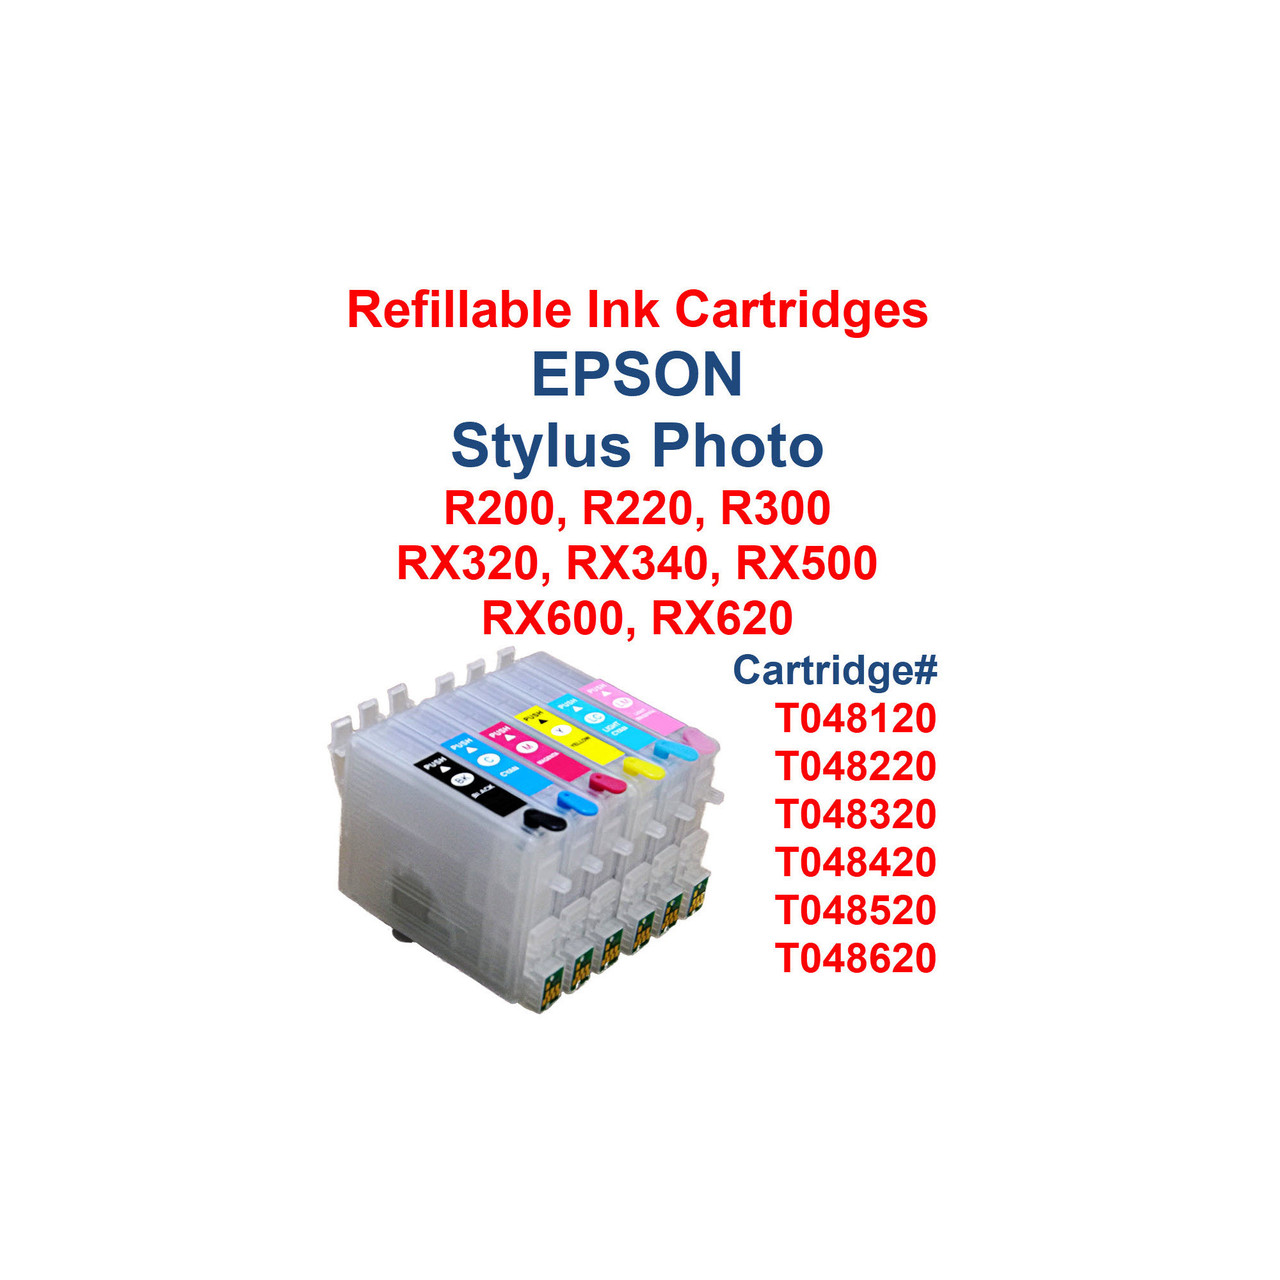 6- Refillable Ink Cartridges for Epson Stylus Photo R200 R220 R300 RX320 RX340 RX500 RX600 RX620 printers  Cartridges work with printers: Epson Stylus Photo R200 Epson Stylus Photo R220 Epson Stylus Photo R300 Epson Stylus Photo RX320 Epson Stylus Photo RX340 Epson Stylus Photo RX500 Epson Stylus Photo RX600 Epson Stylus Photo RX620  Package includes  6 Refillable Ink Cartridges with auto reset chips installed   6 Syringes for filling cartridges  >>> Los Angeles same day delivery available (Contact us for pricing) <<<